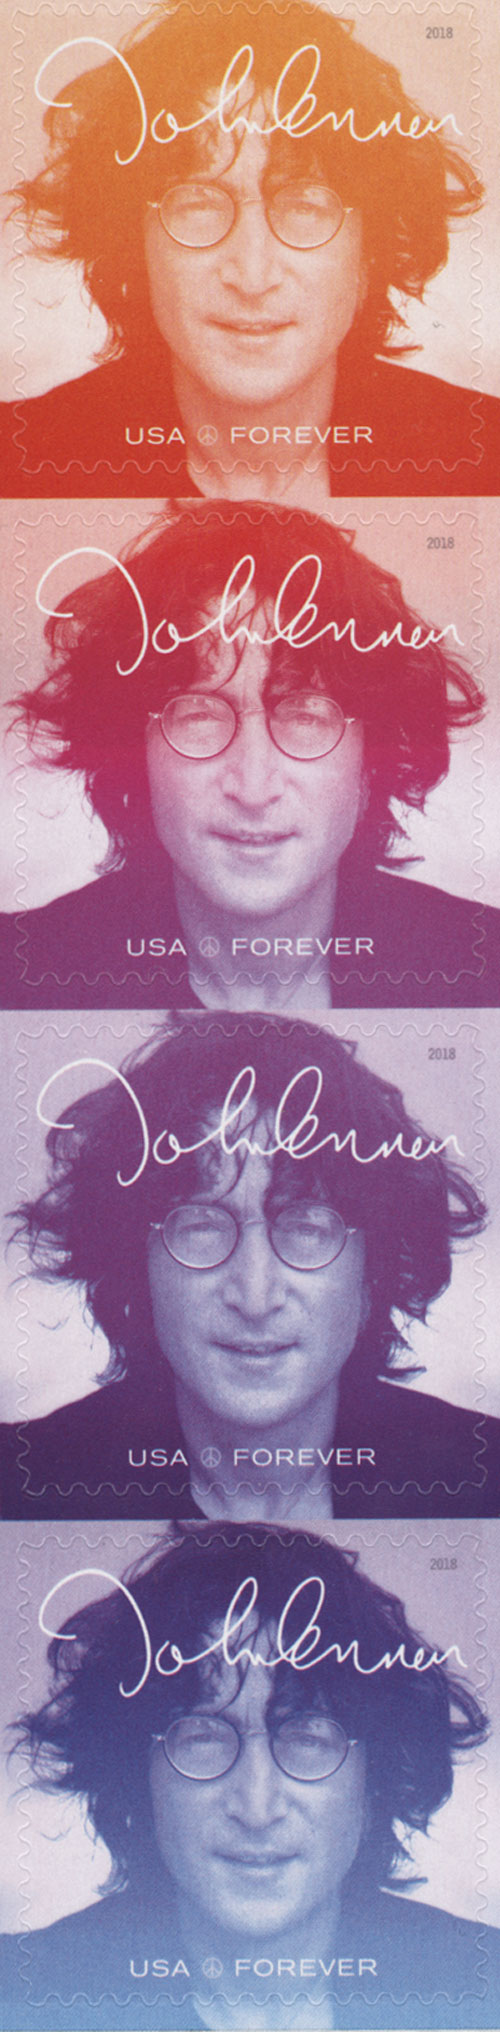 2018 First-Class Forever Stamp - Music Icons: John Lennon